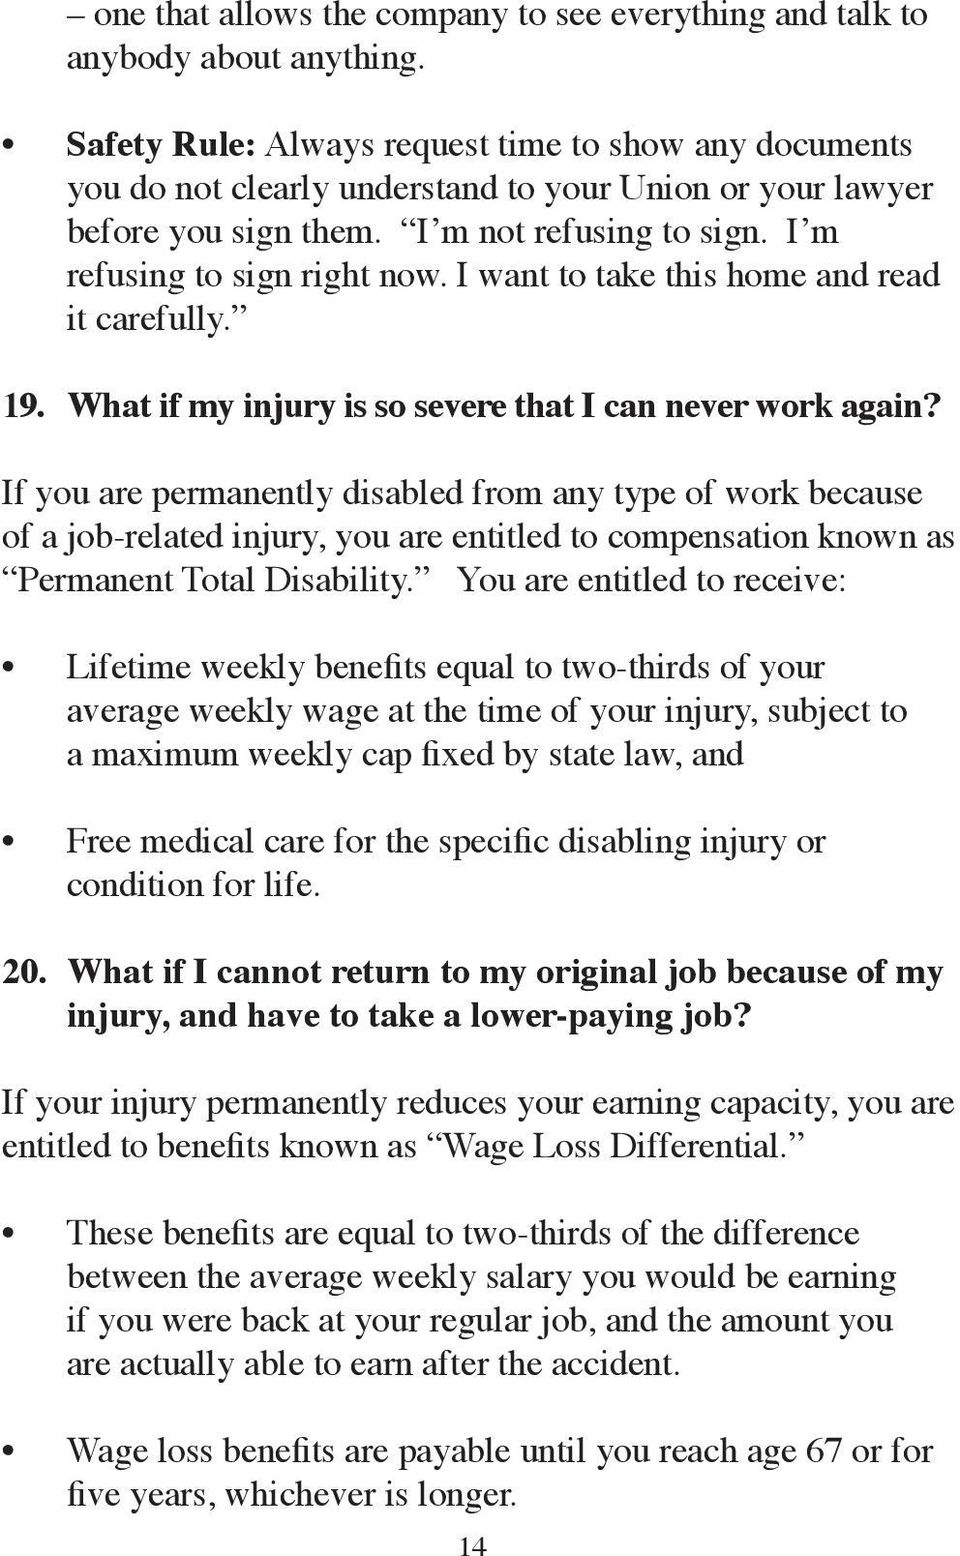 I want to take this home and read it carefully. 19. What if my injury is so severe that I can never work again?